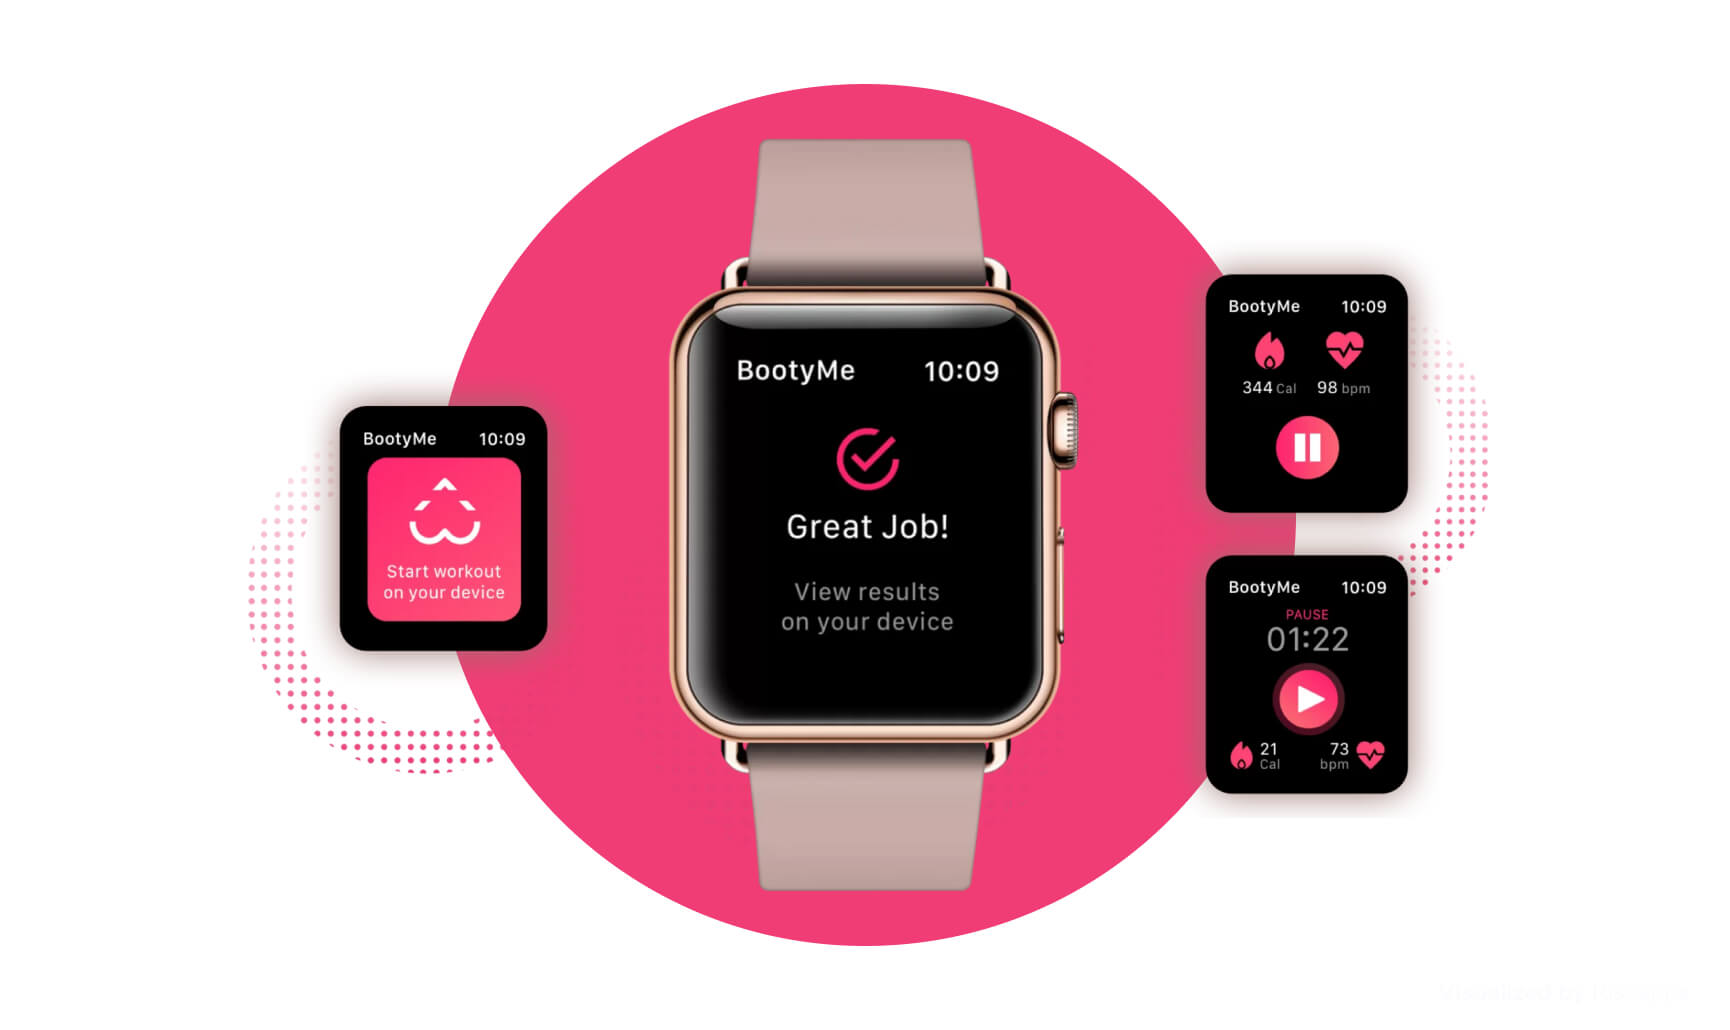 BootyMe Internet of Things fitness app